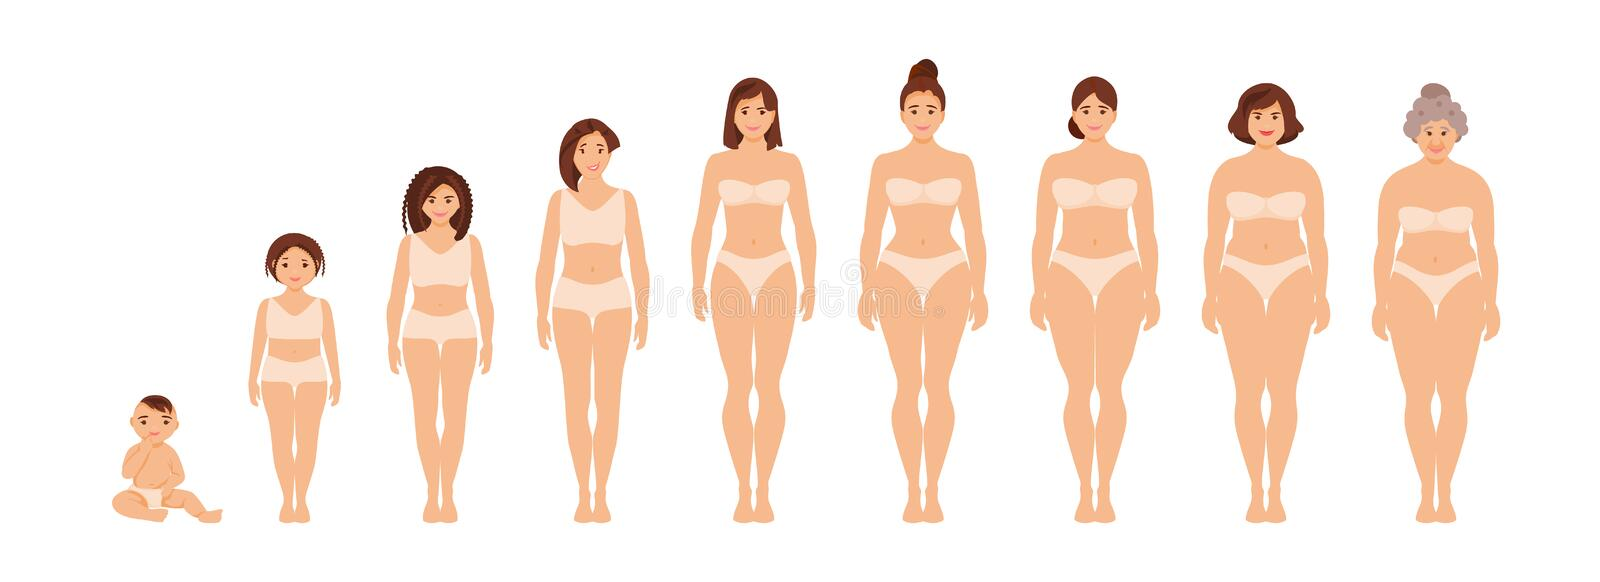 Female anatomy of different ages vector stock illustration